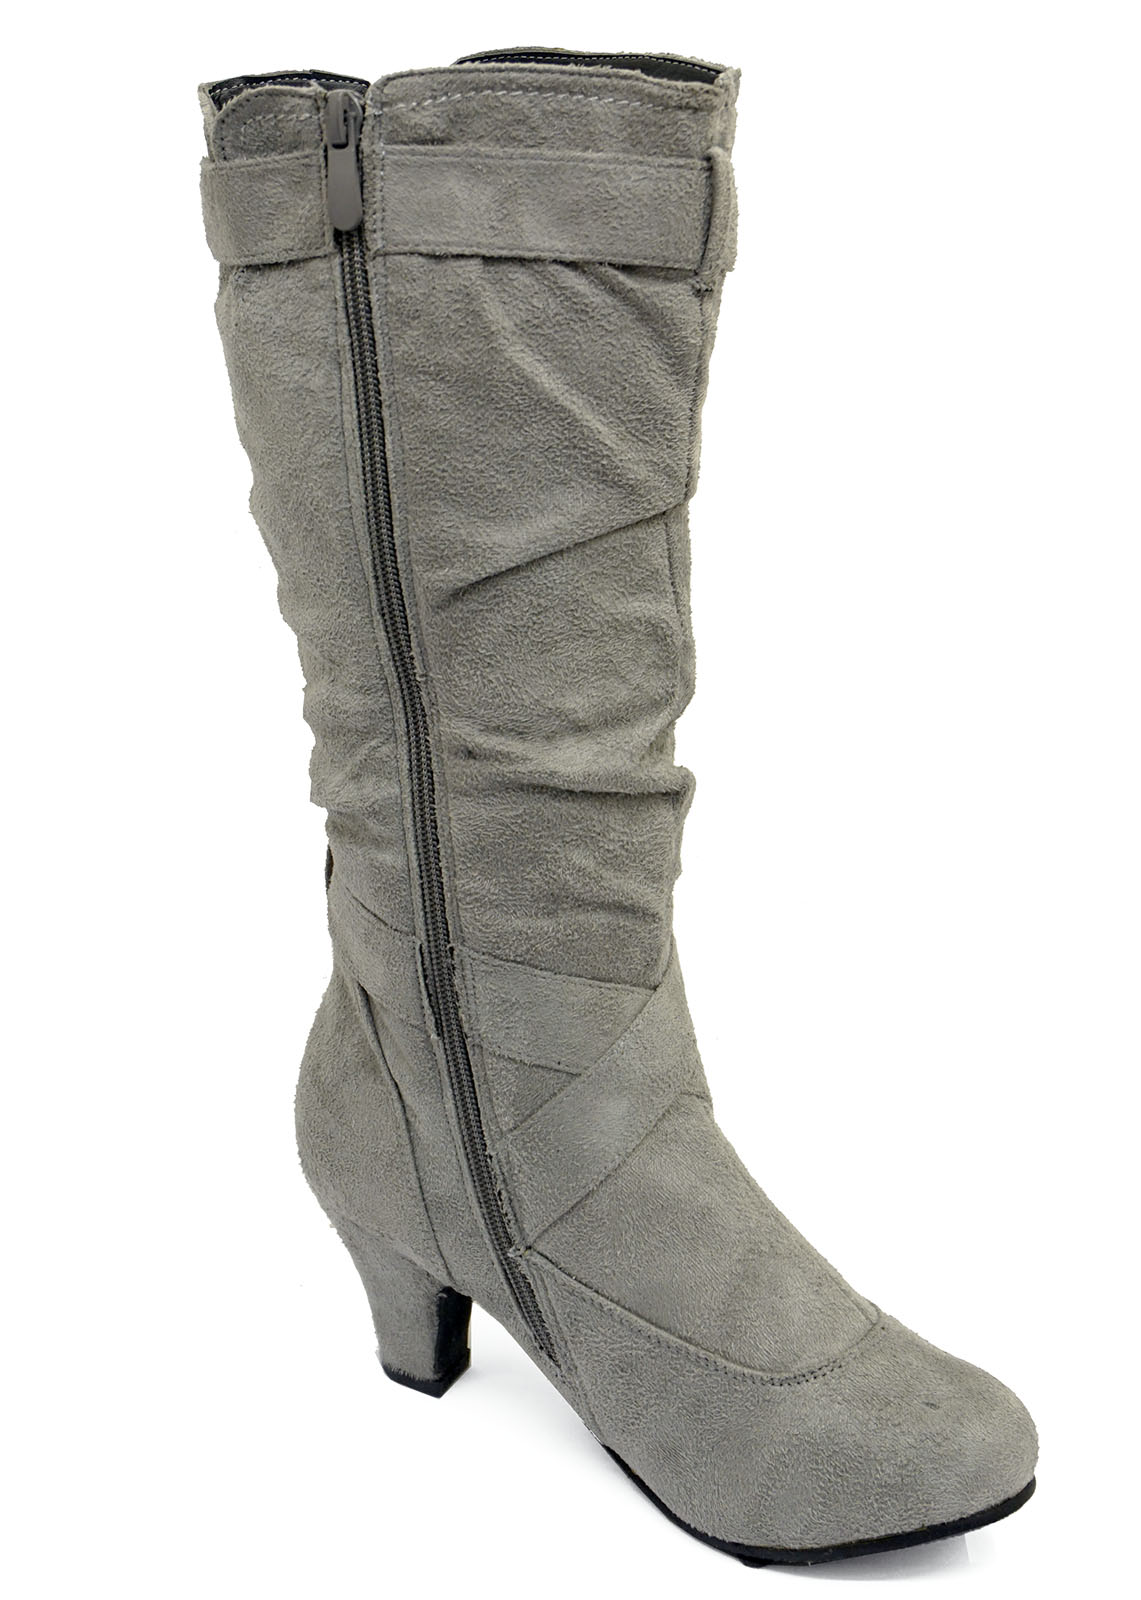 LADIES-GREY-ZIP-UP-BIKER-SLOUCH-RUCHED-TALL-KNEE-CALF-LOW-HEEL-BOOTS-SHOES-4-10 thumbnail 13